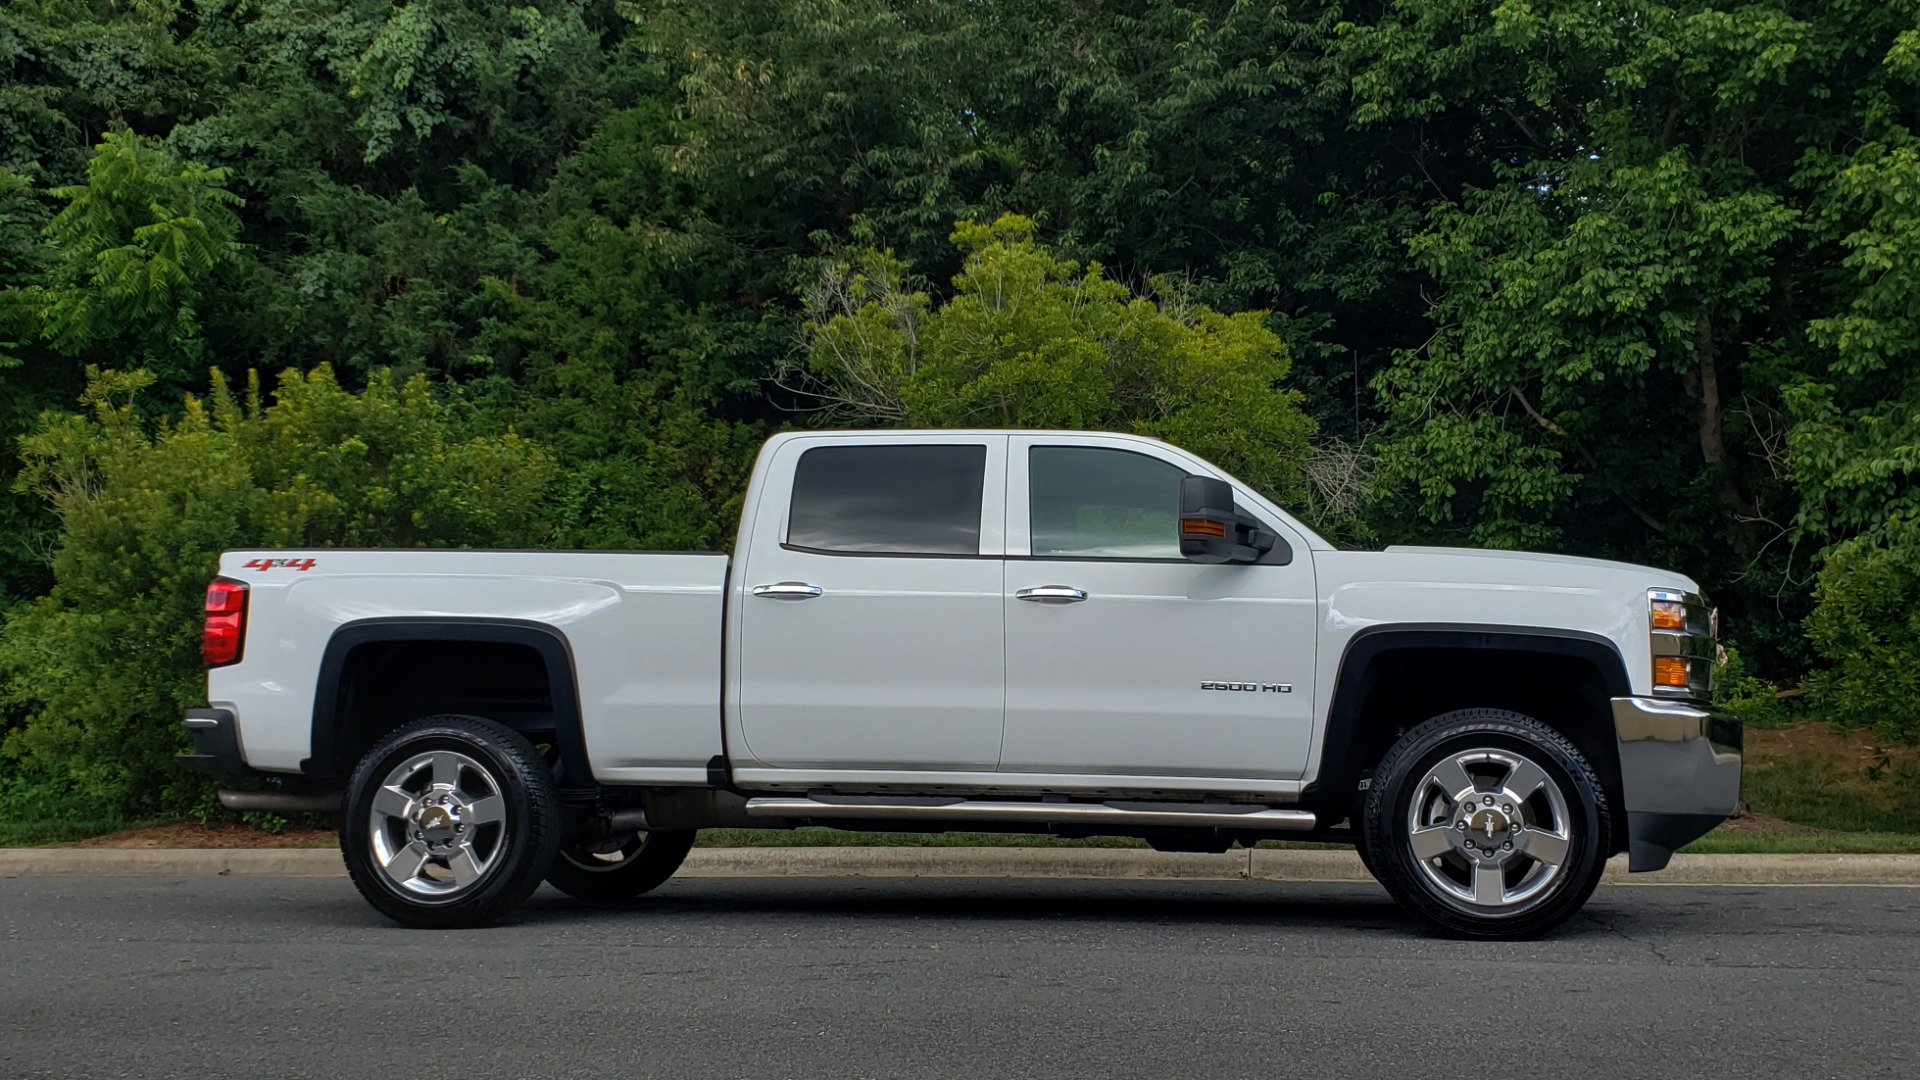 Used 2019 Chevrolet SILVERADO 2500HD WORK TRUCK / CREW CAB / 6.0L V8 / 4WD / BEDLINER for sale Sold at Formula Imports in Charlotte NC 28227 6